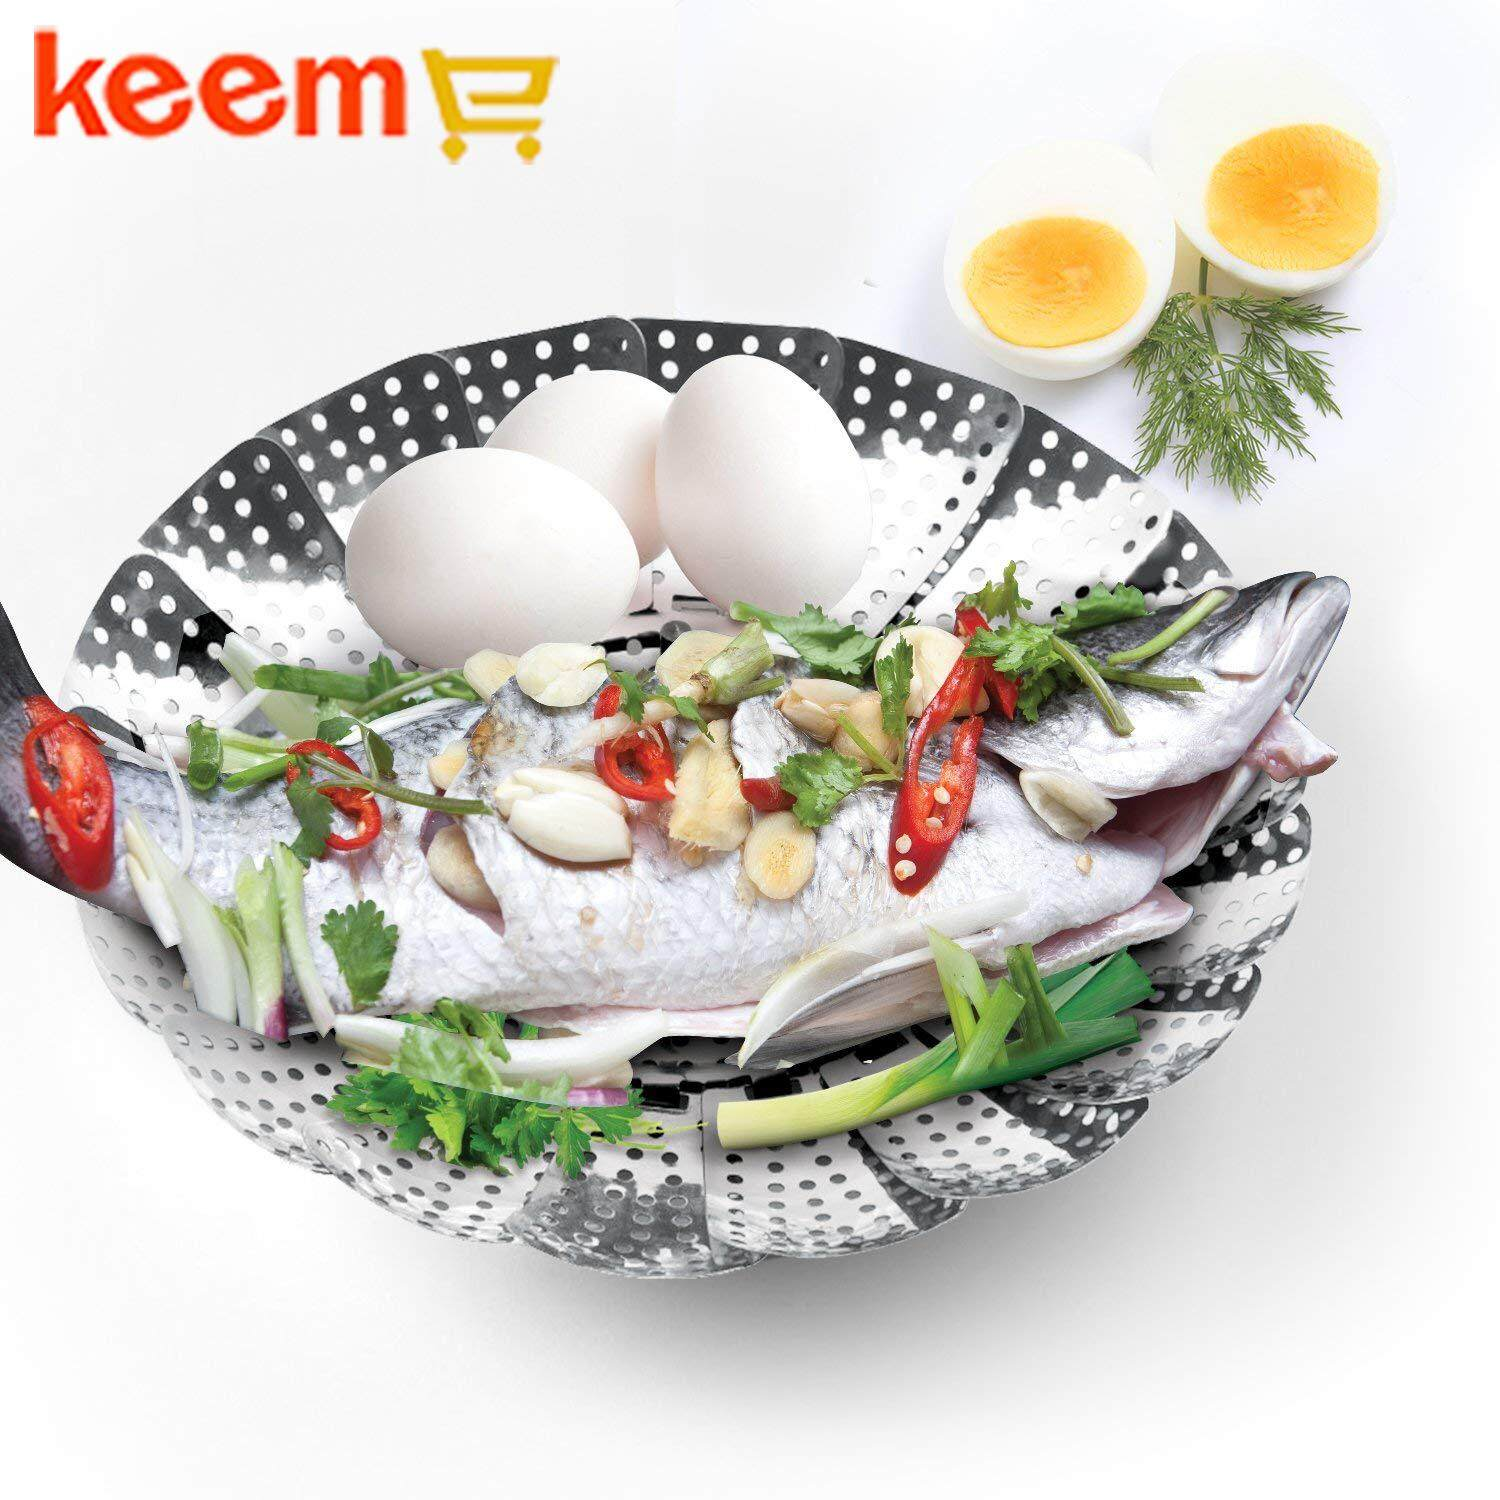 ✨Keeme Vegetable Steamer Basket Set - Steamer Insert for Instant Pot + Safety Tool - 100% Stainless Steel - Pressure Cooker & Instant Pot Accessories, Pot in Pot - Egg Rack✨